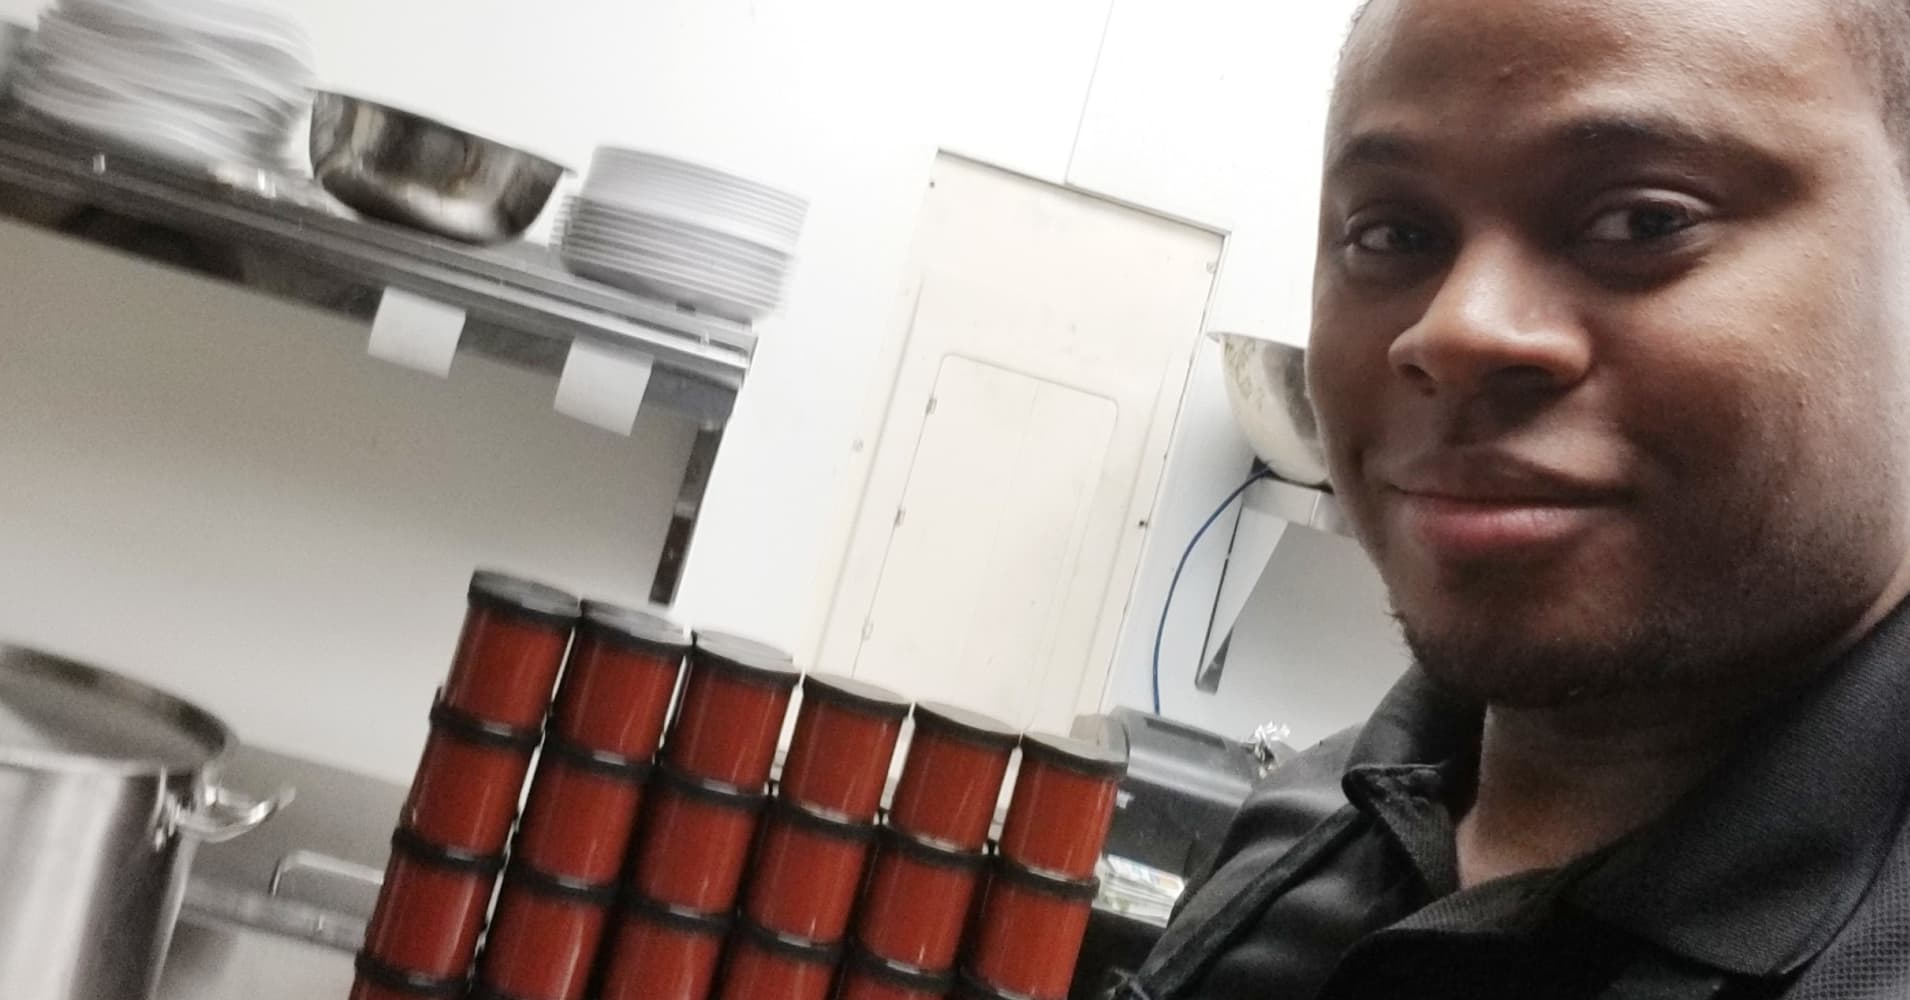 Amazon Security Guard Makes Thousands Selling Mr Maurs Sauce On Amazon